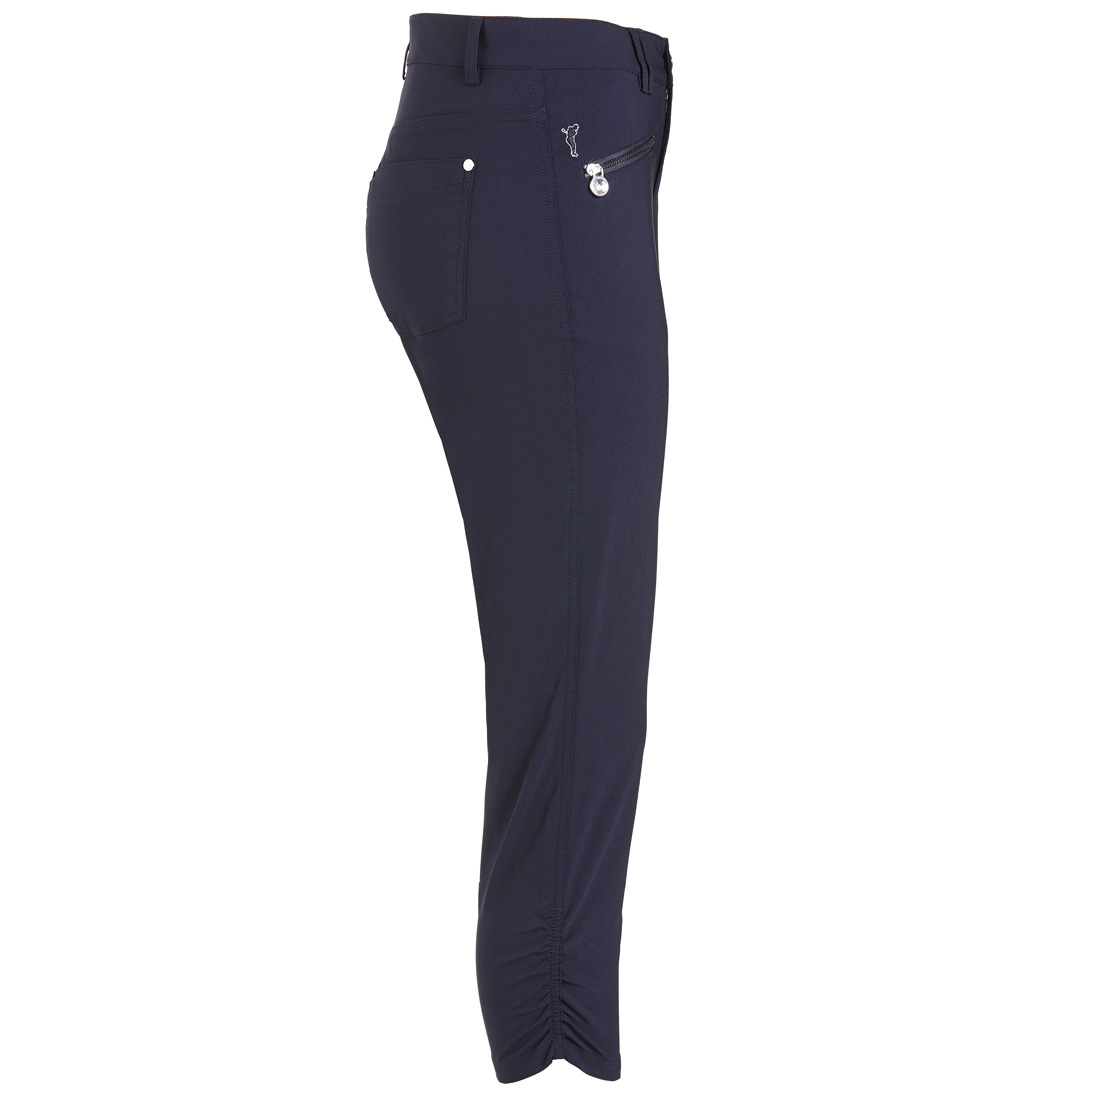 Damen Techno Stretch Caprihose